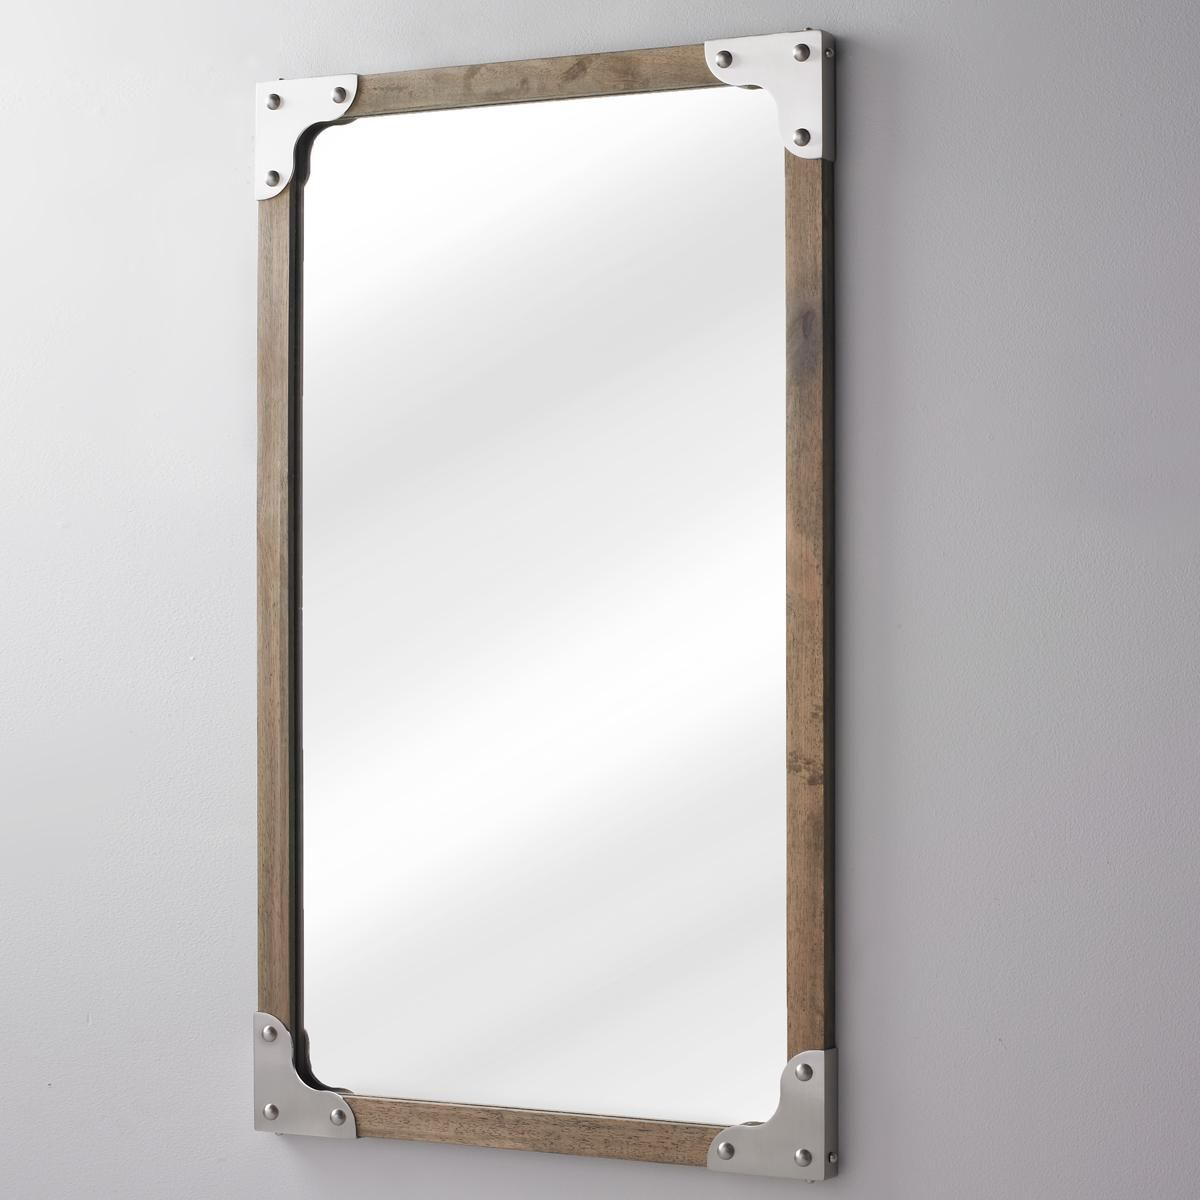 Rivet And Wood Industrial Style Mirror | Weathered Woods Intended For Koeller Industrial Metal Wall Mirrors (Image 17 of 20)